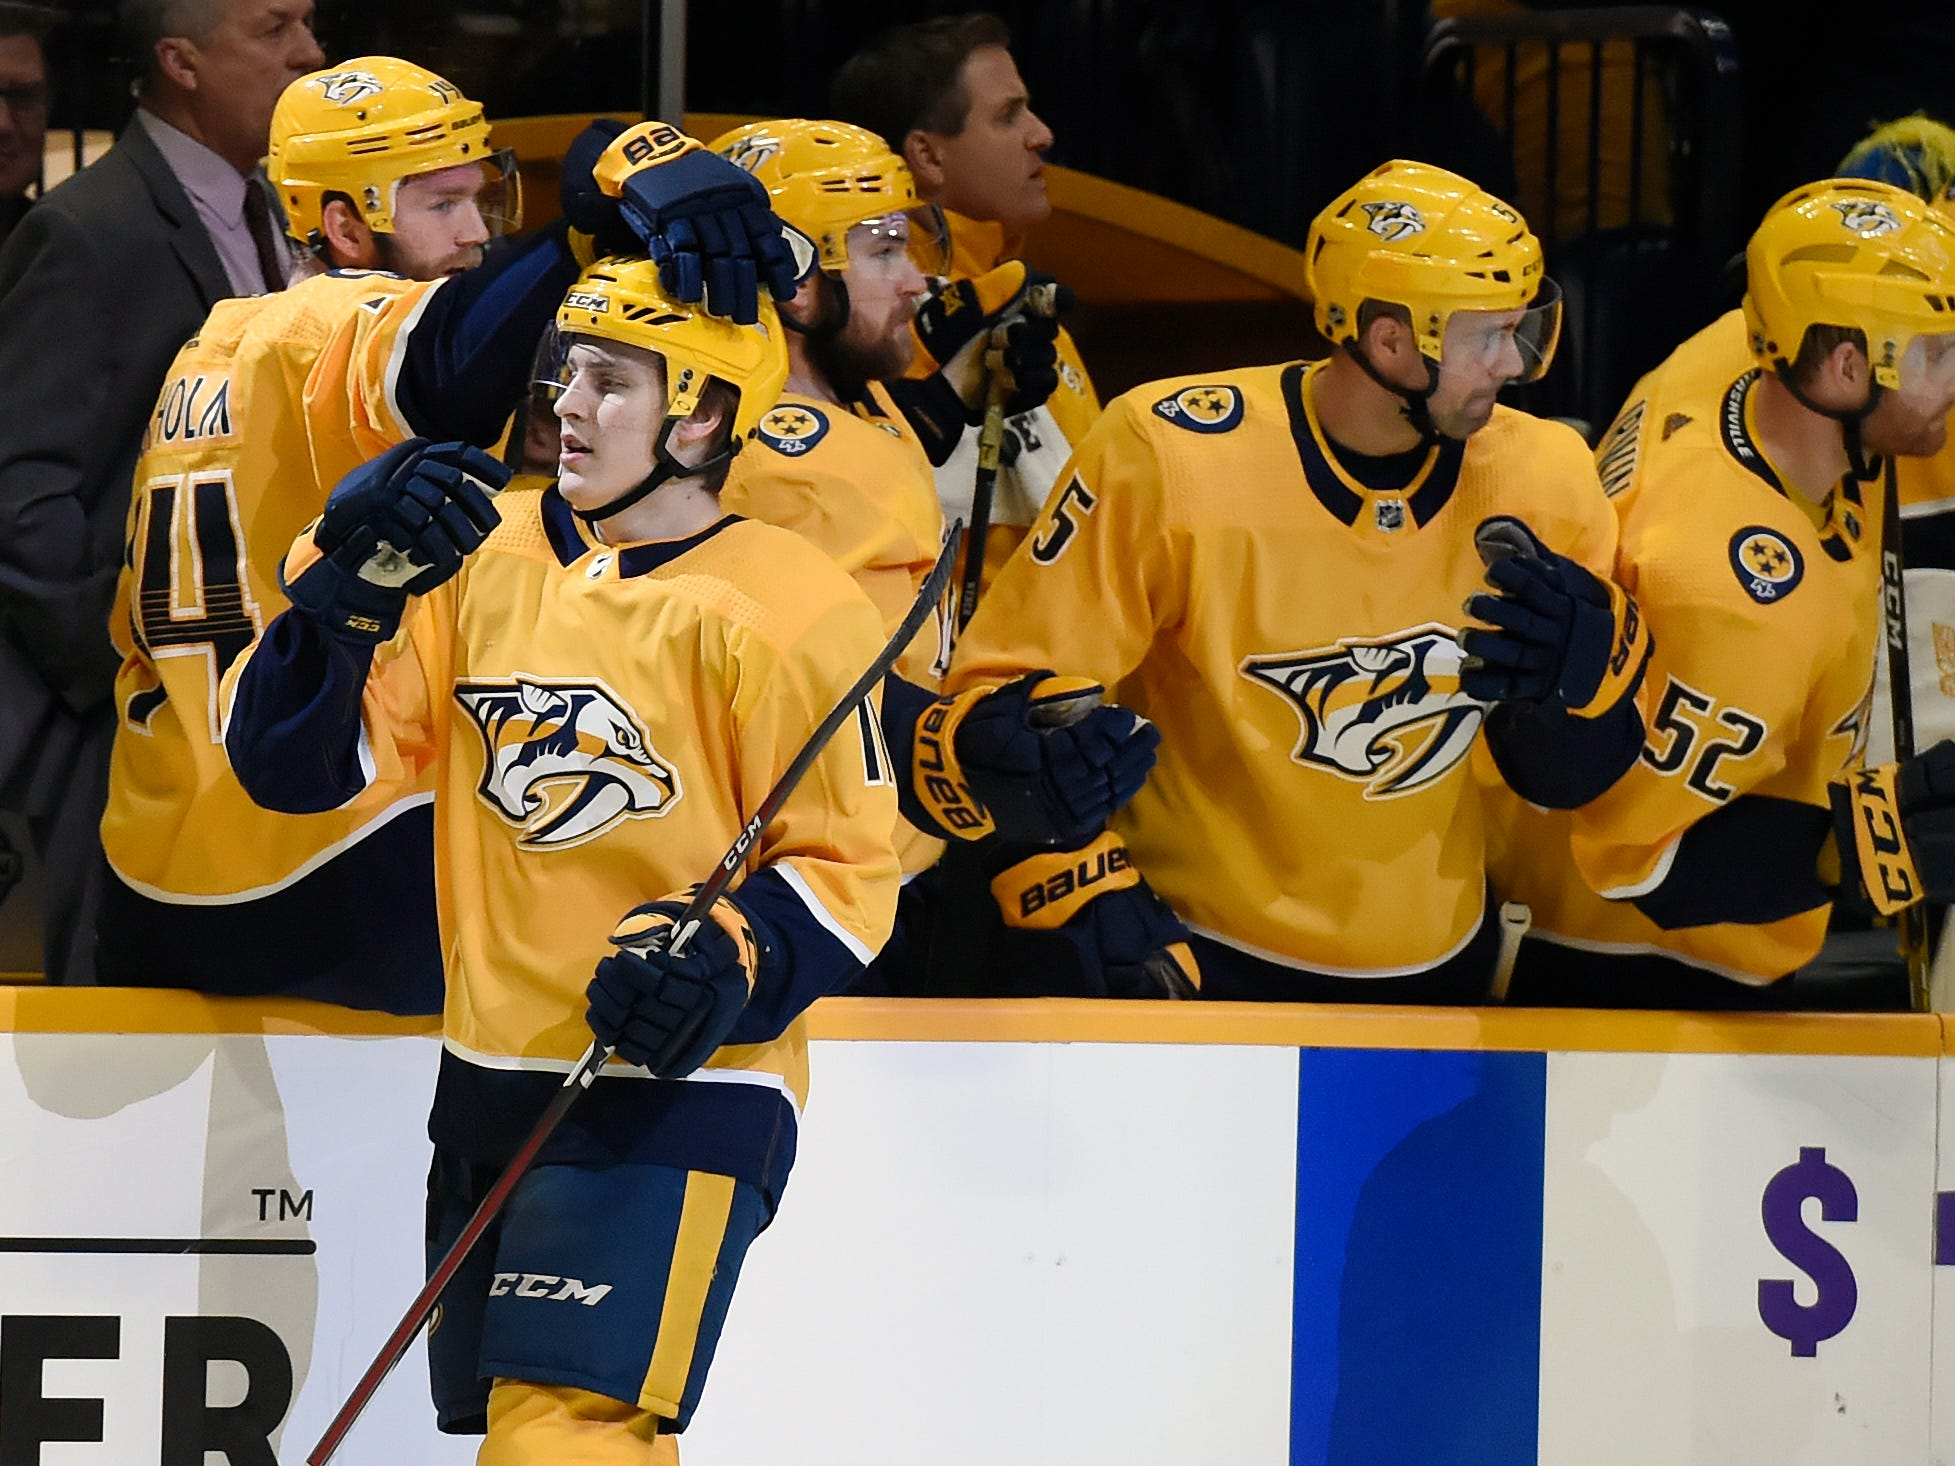 Dec. 1: Predators 5, Blackhawks 2 -- Nashville Predators defenseman Eeli Tolvanen (11), of Finland, is congratulated after scoring a goal against the Chicago Blackhawks during the first period of an NHL hockey game Saturday, Dec. 1, 2018, in Nashville, Tenn.